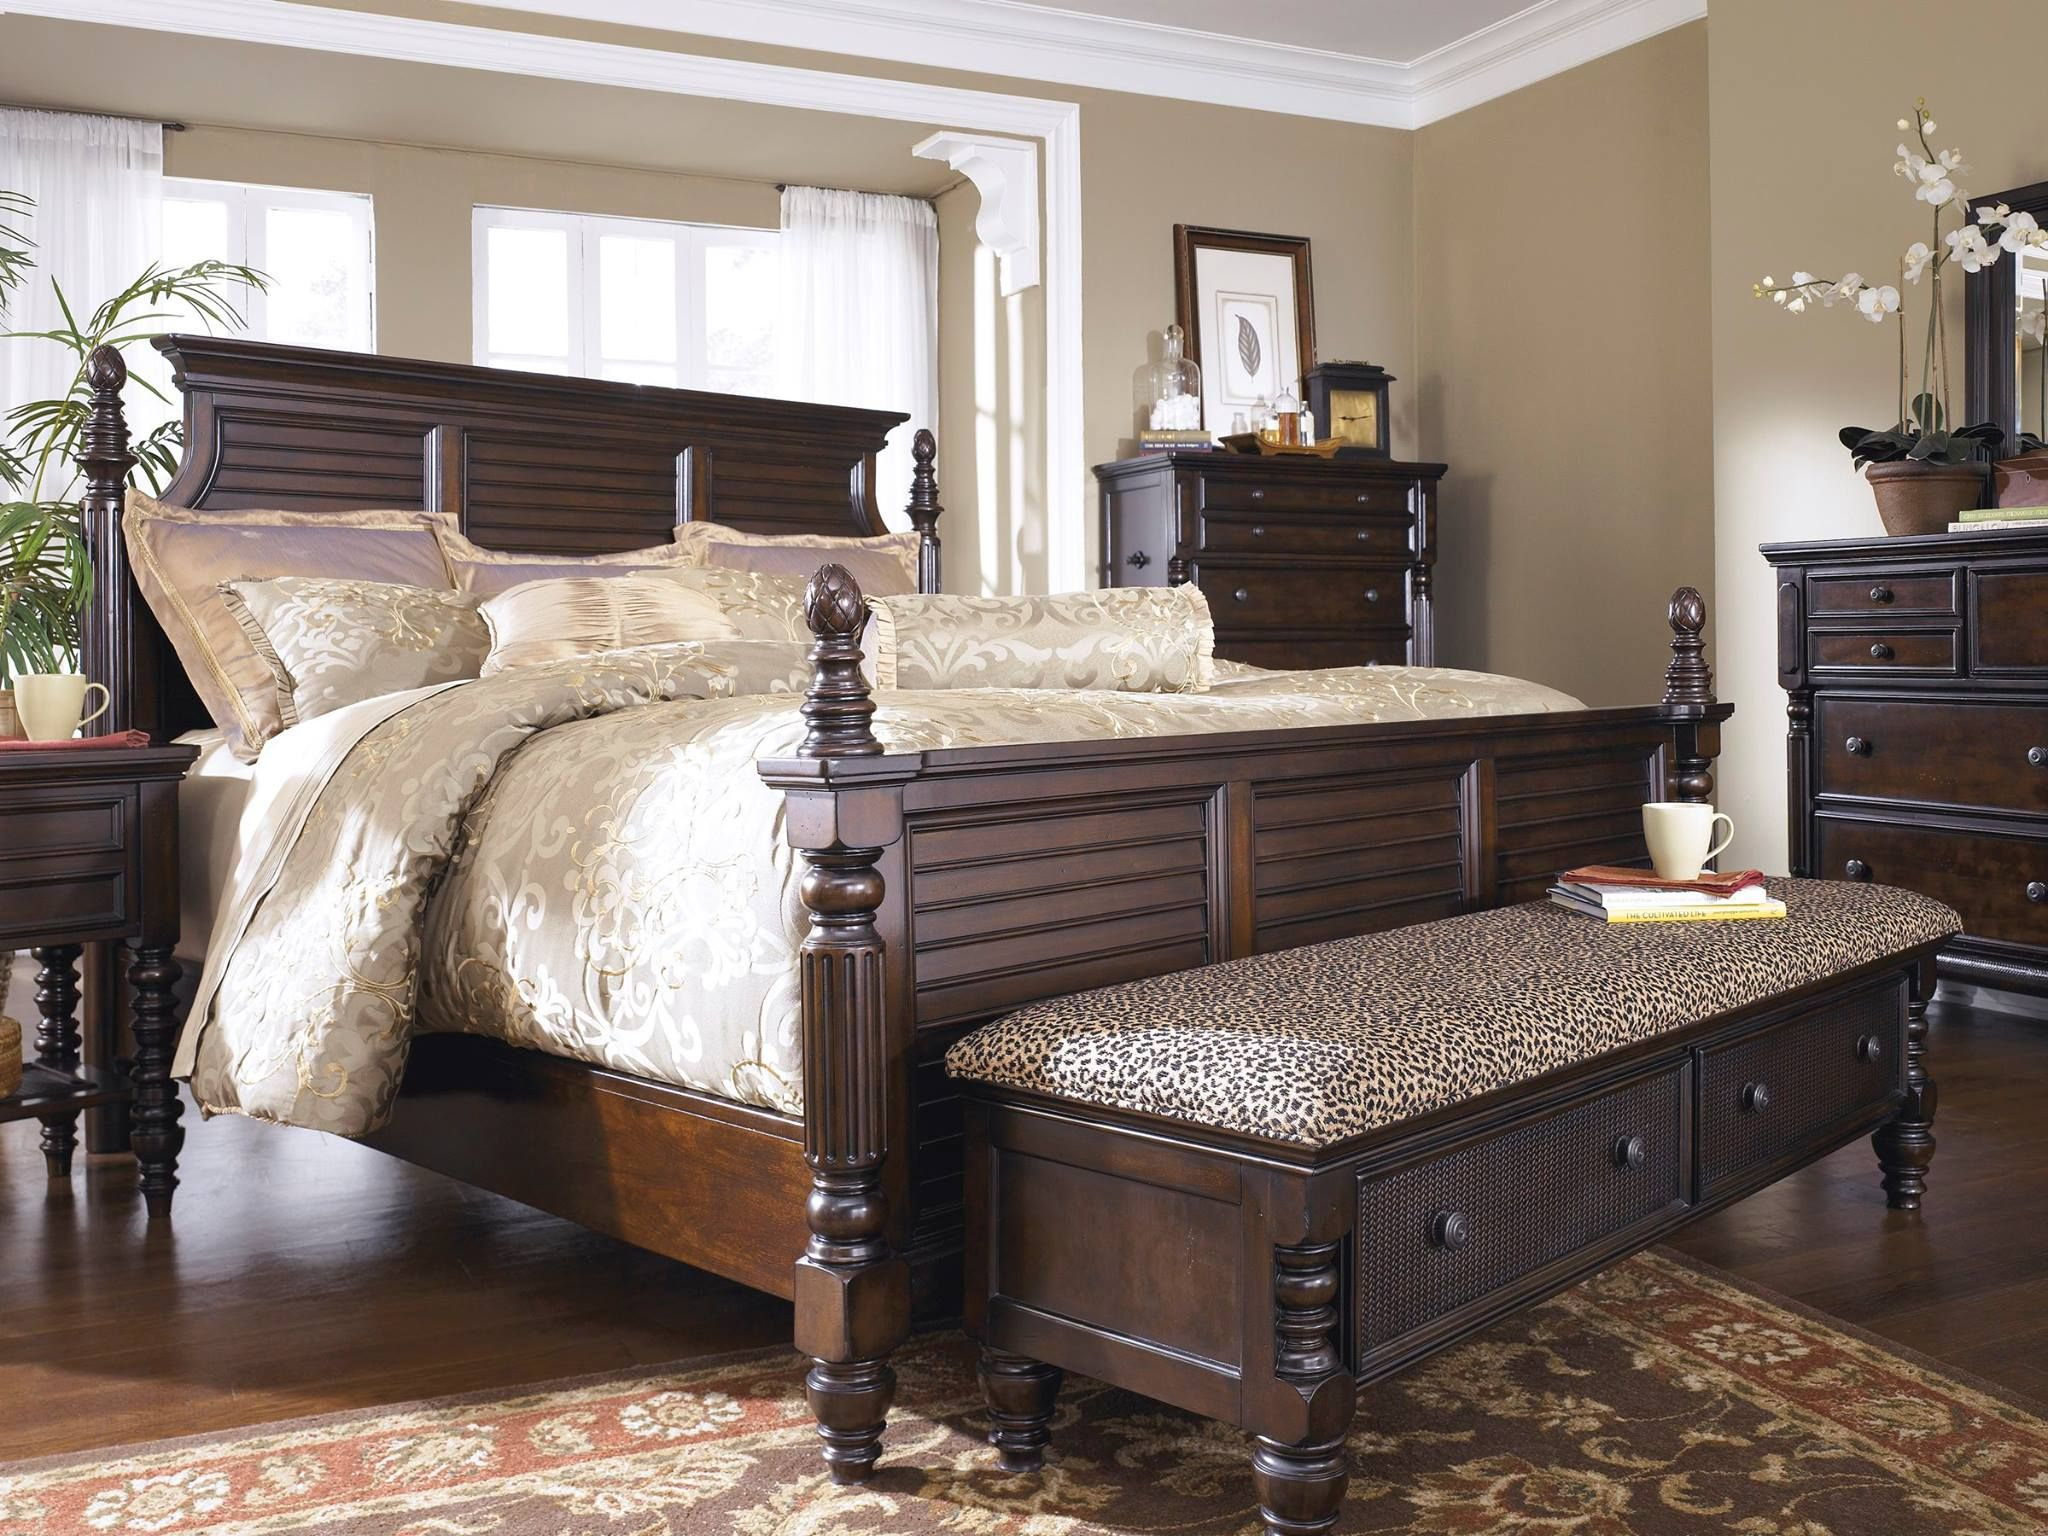 Incroyable Cool And Tropical Bedroom Furniture Sets Bedroom Furniture Sets